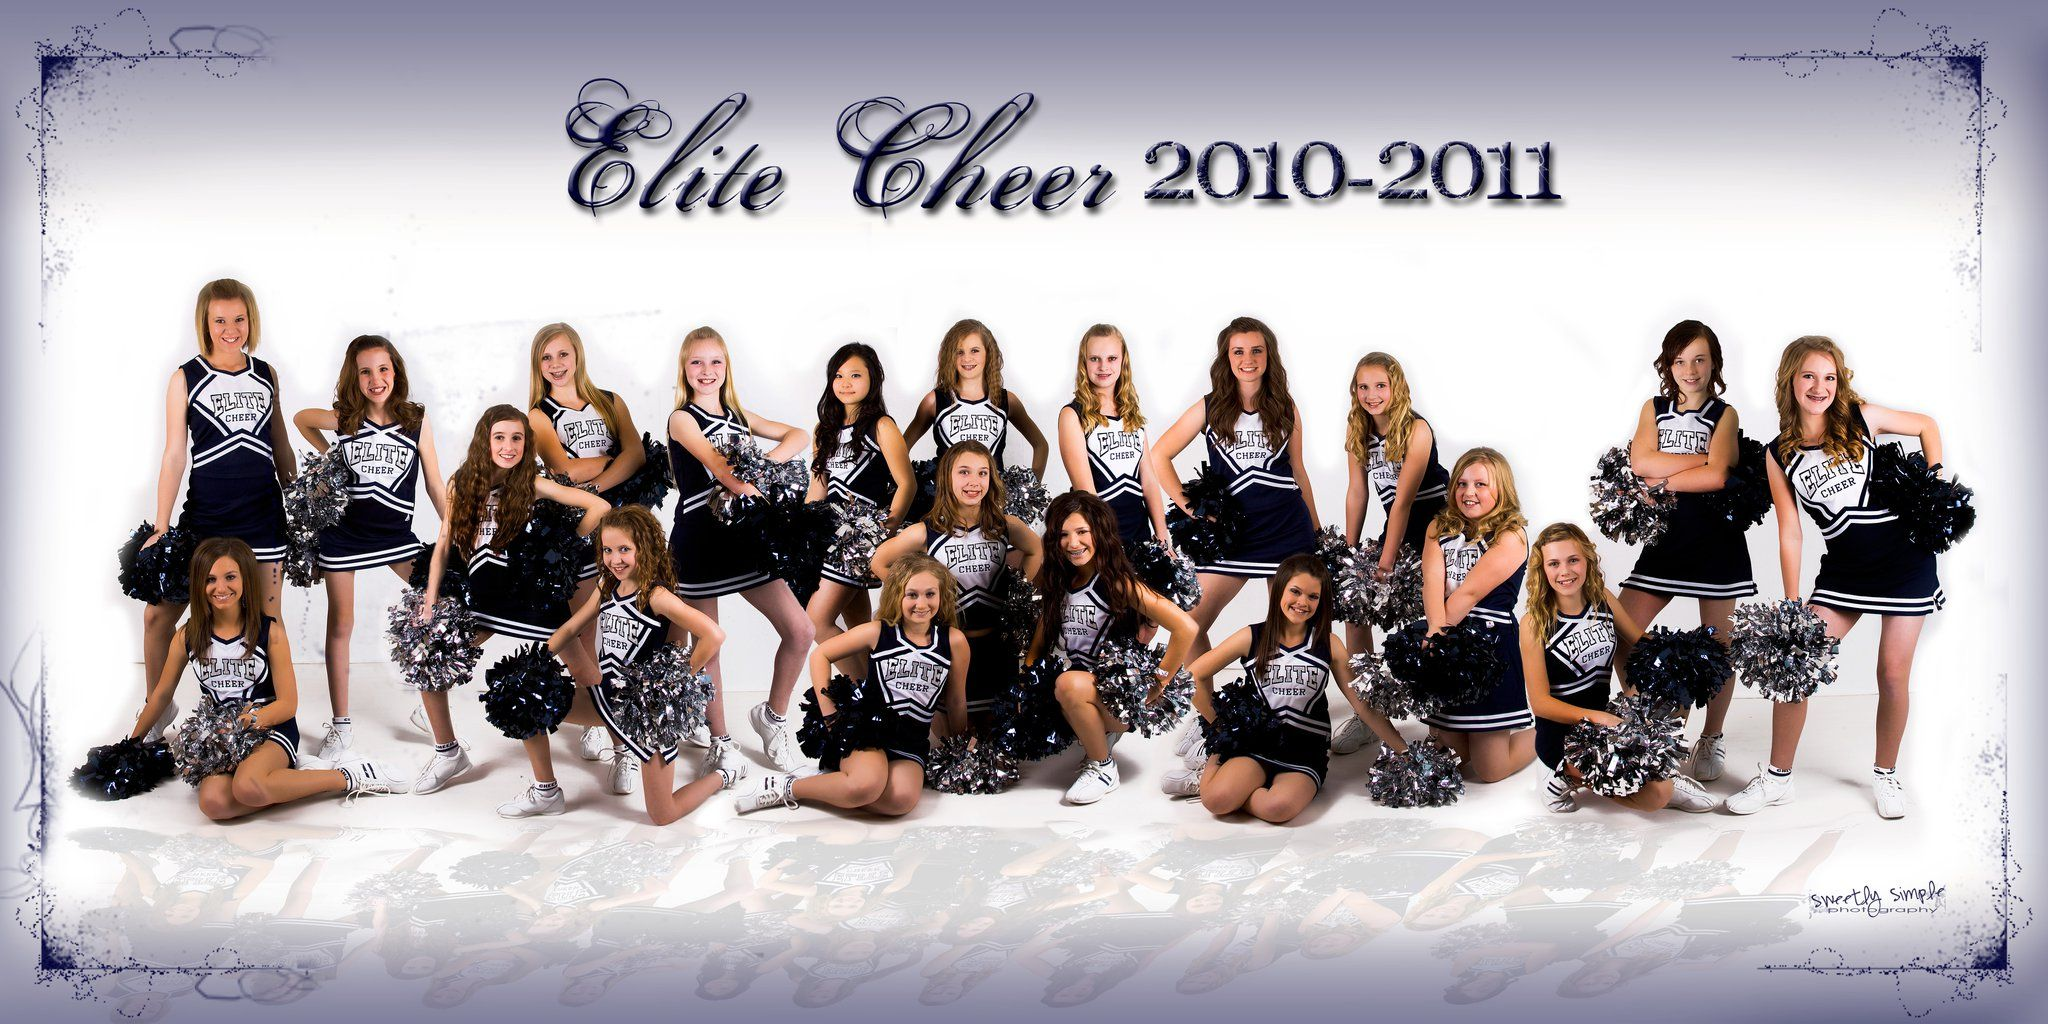 Dixie Cheer Competition Cheer team pictures, Dance team